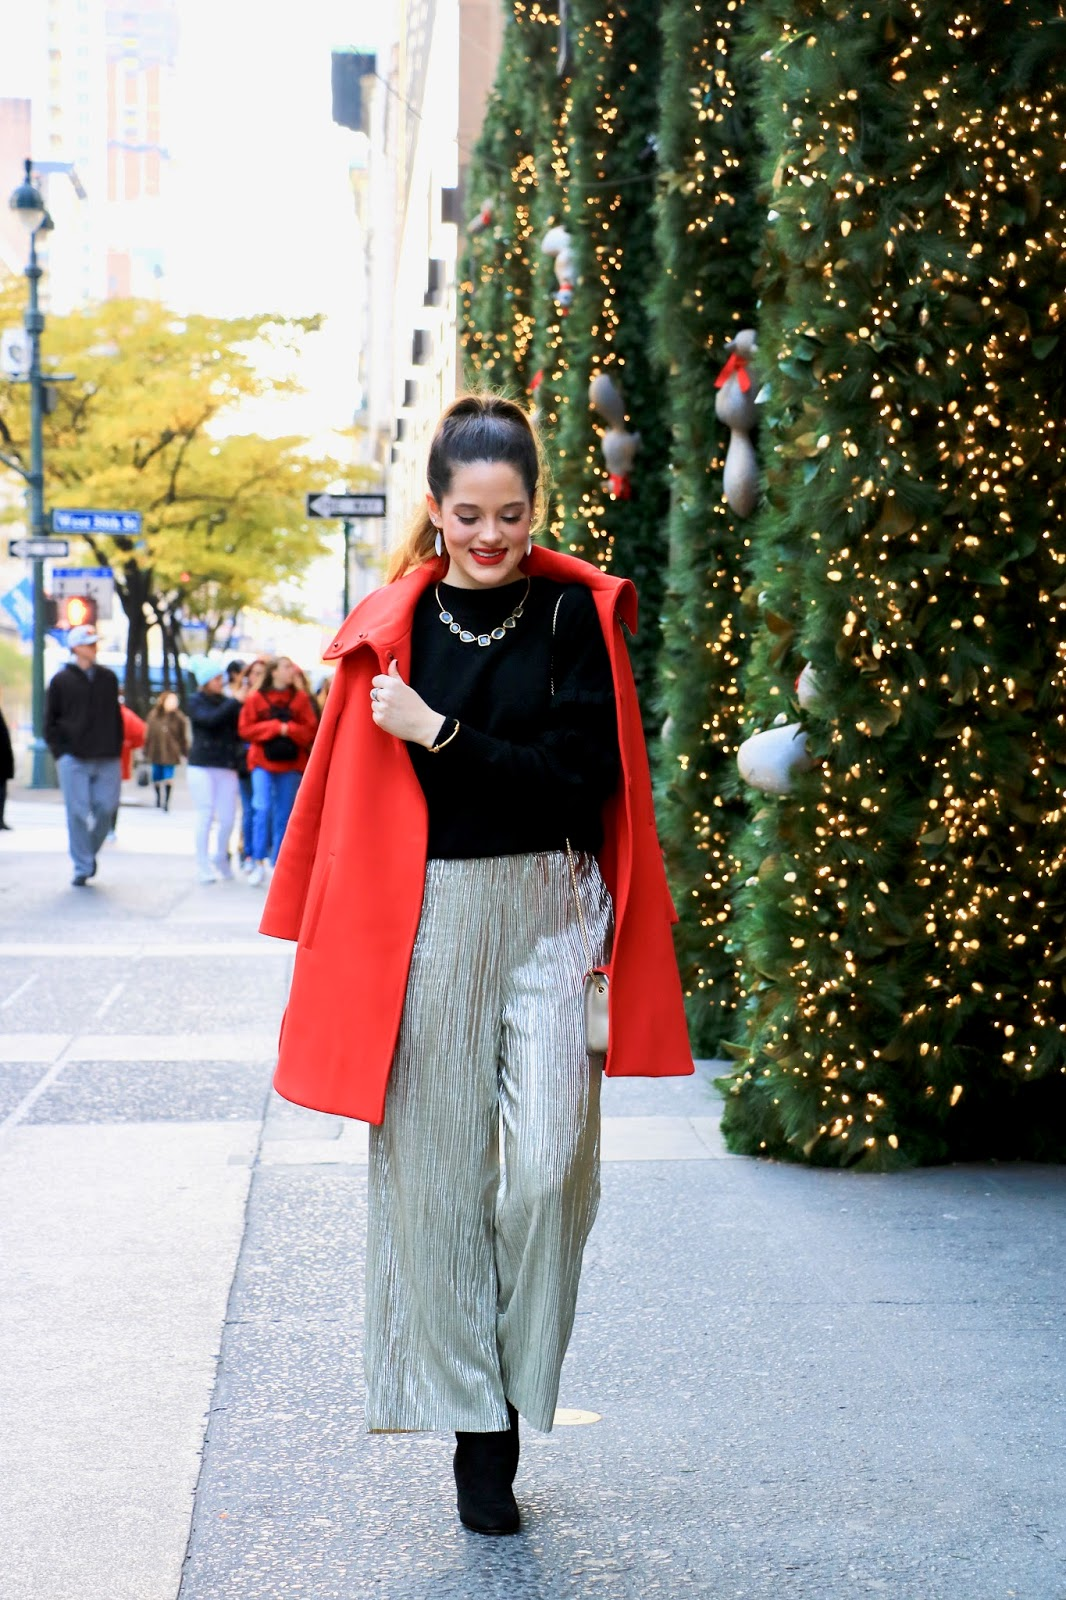 Nyc fashion blogger Kathleen Harper wearing a holiday outfit